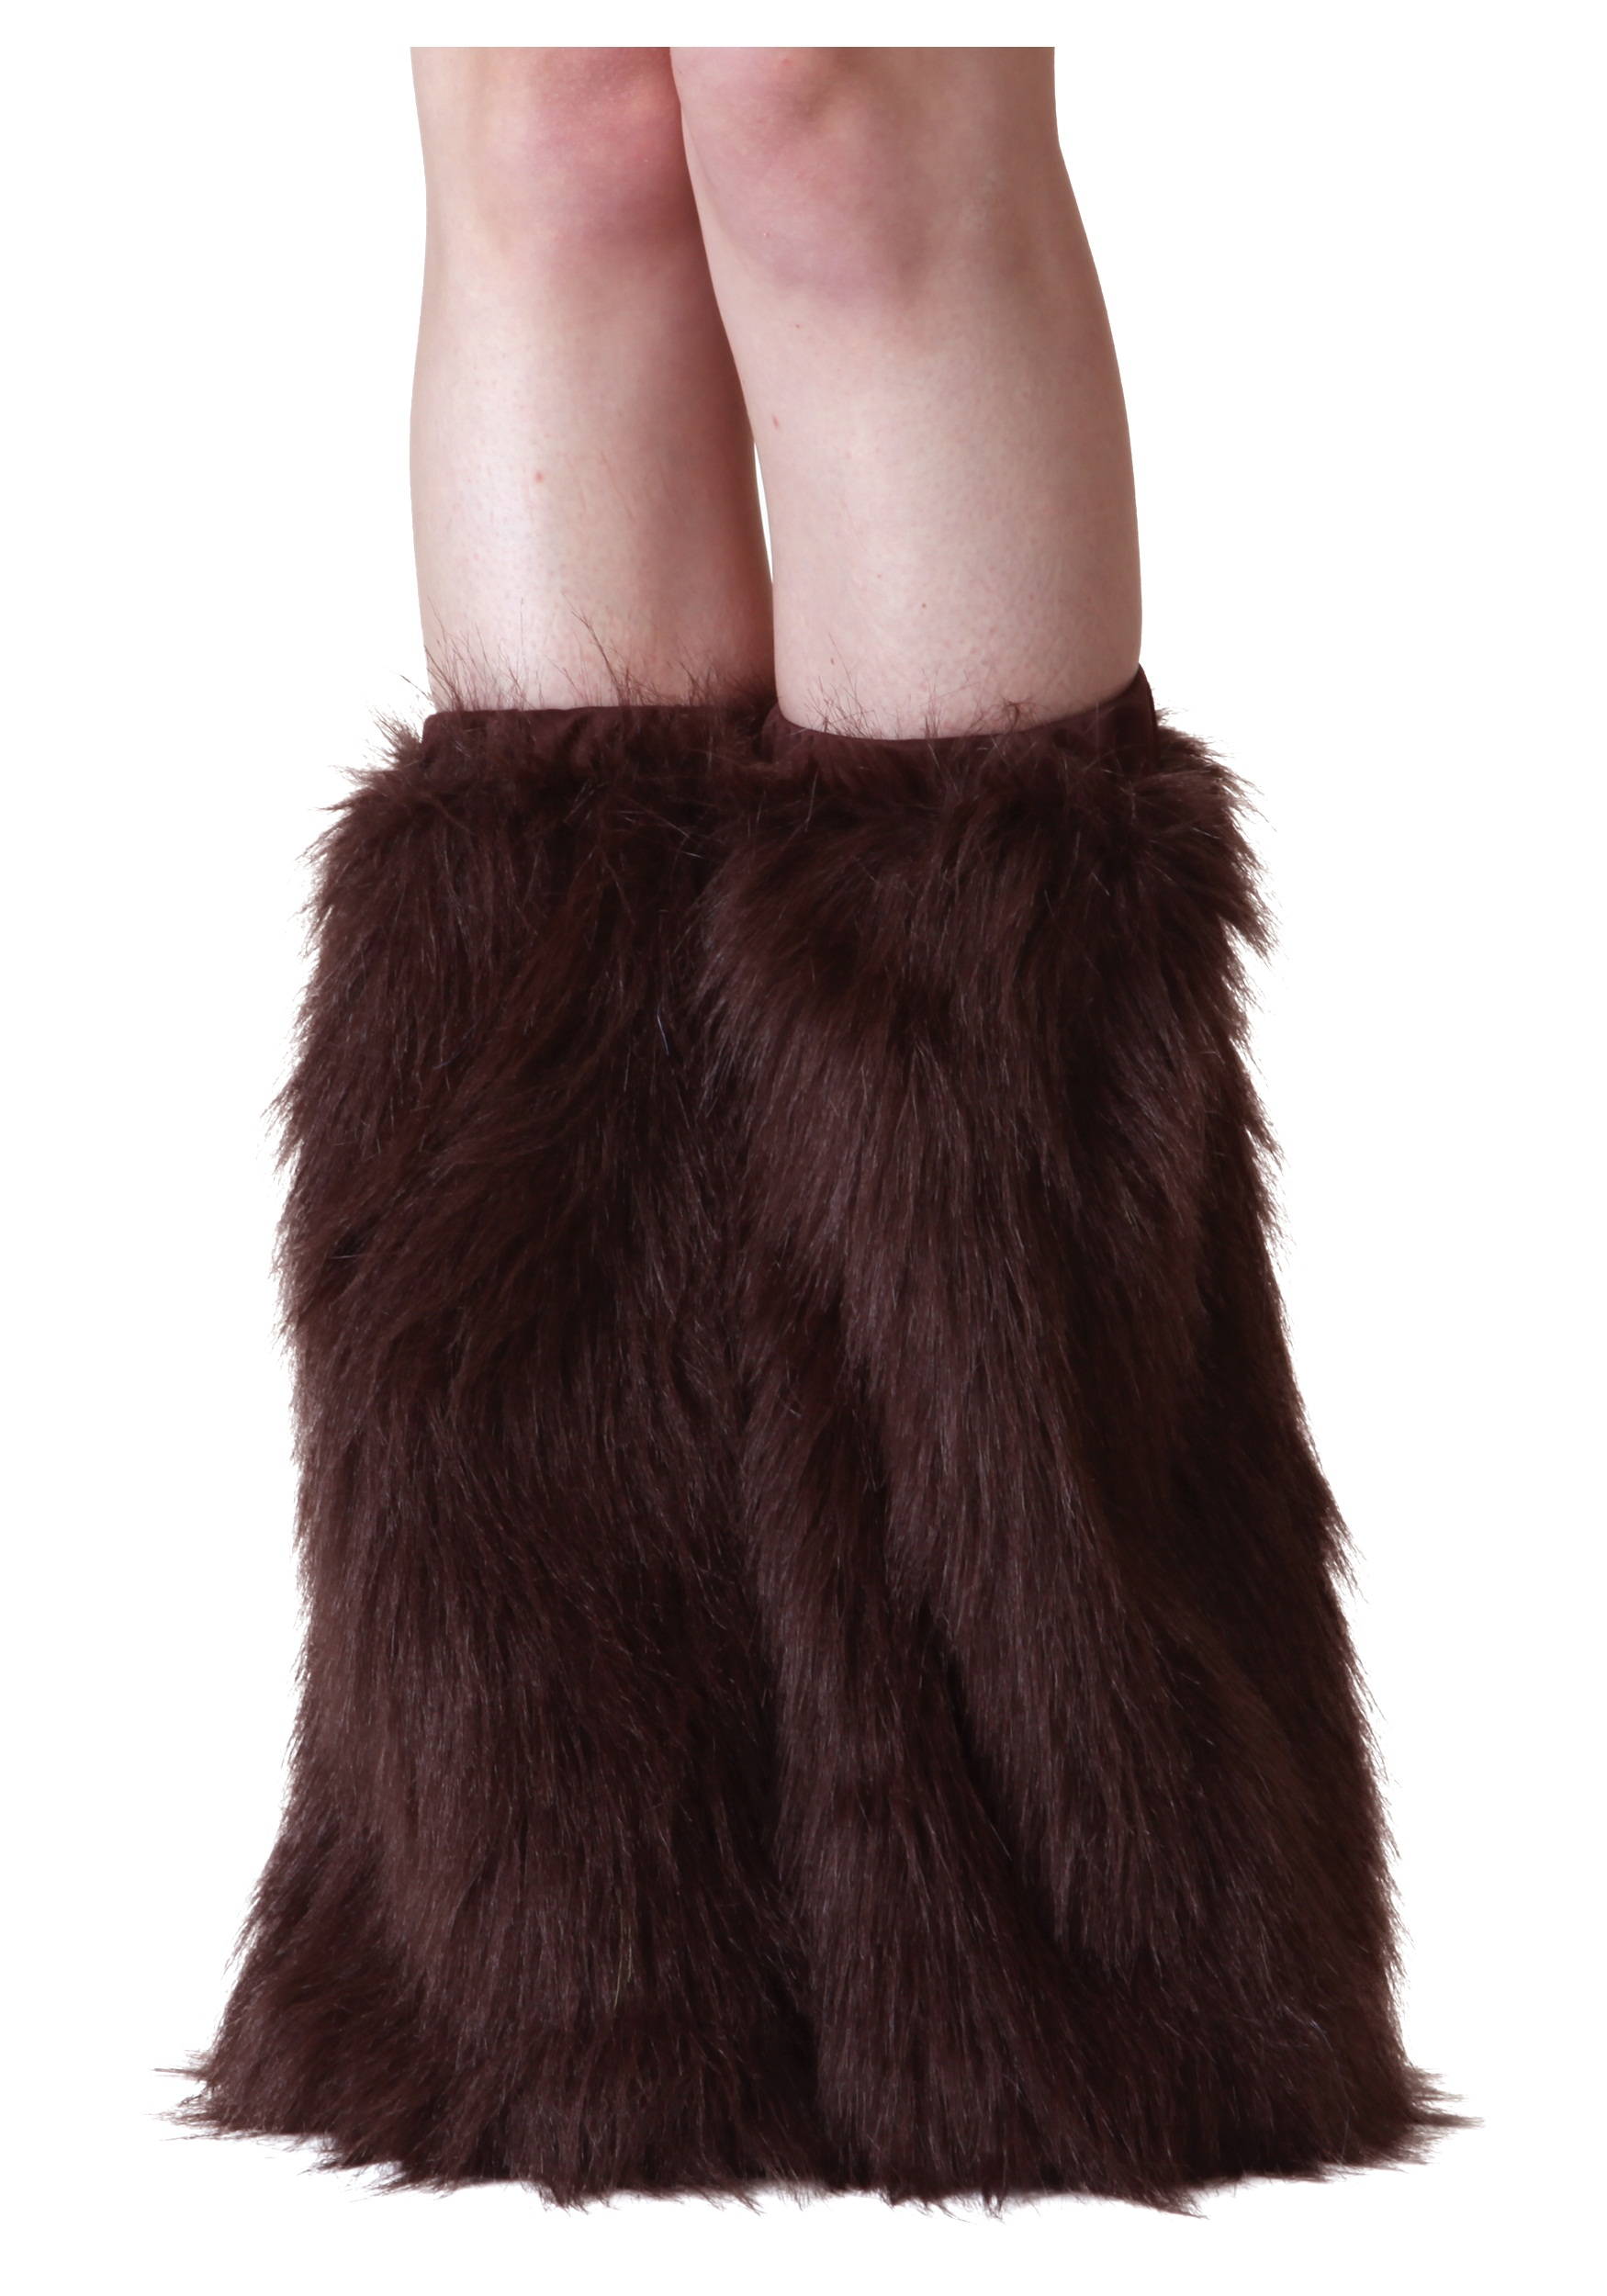 Adult Brown Furry Boot Covers | Furry Cosplay Costumes